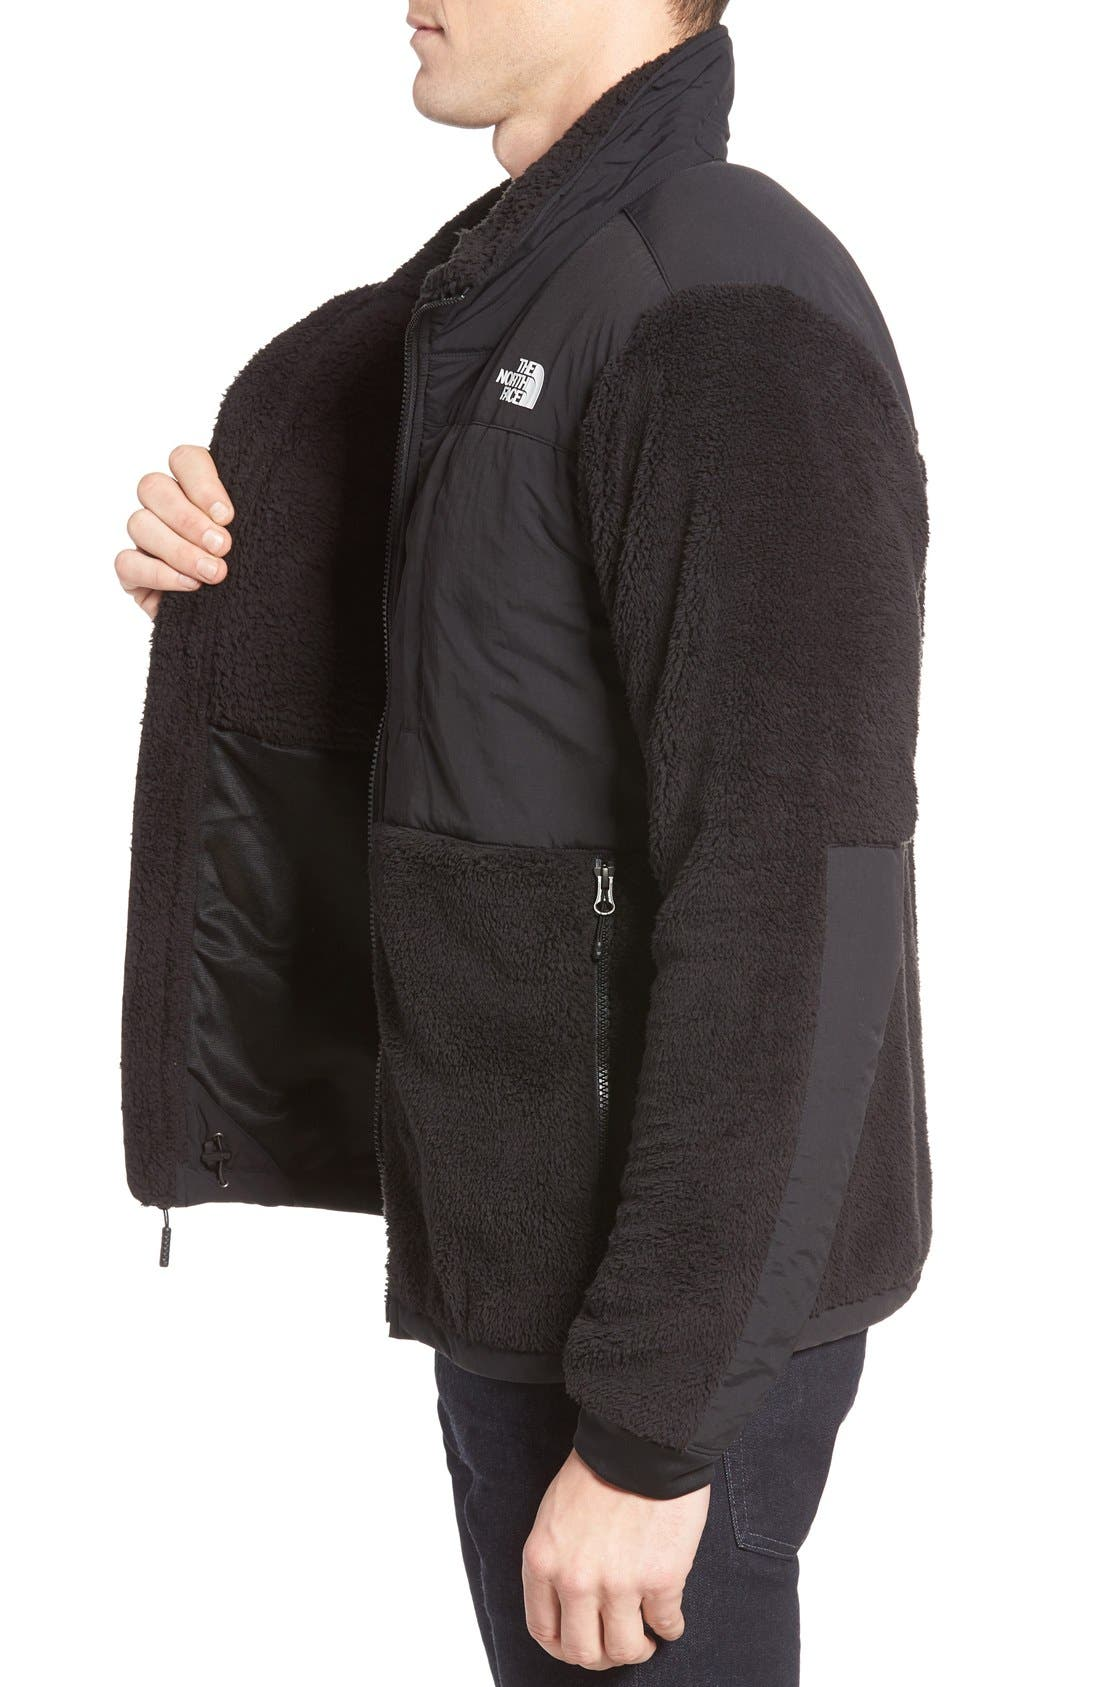 Novelty Denali Jacket,                             Alternate thumbnail 3, color,                             Tnf Black Sherpa/ Tnf Black